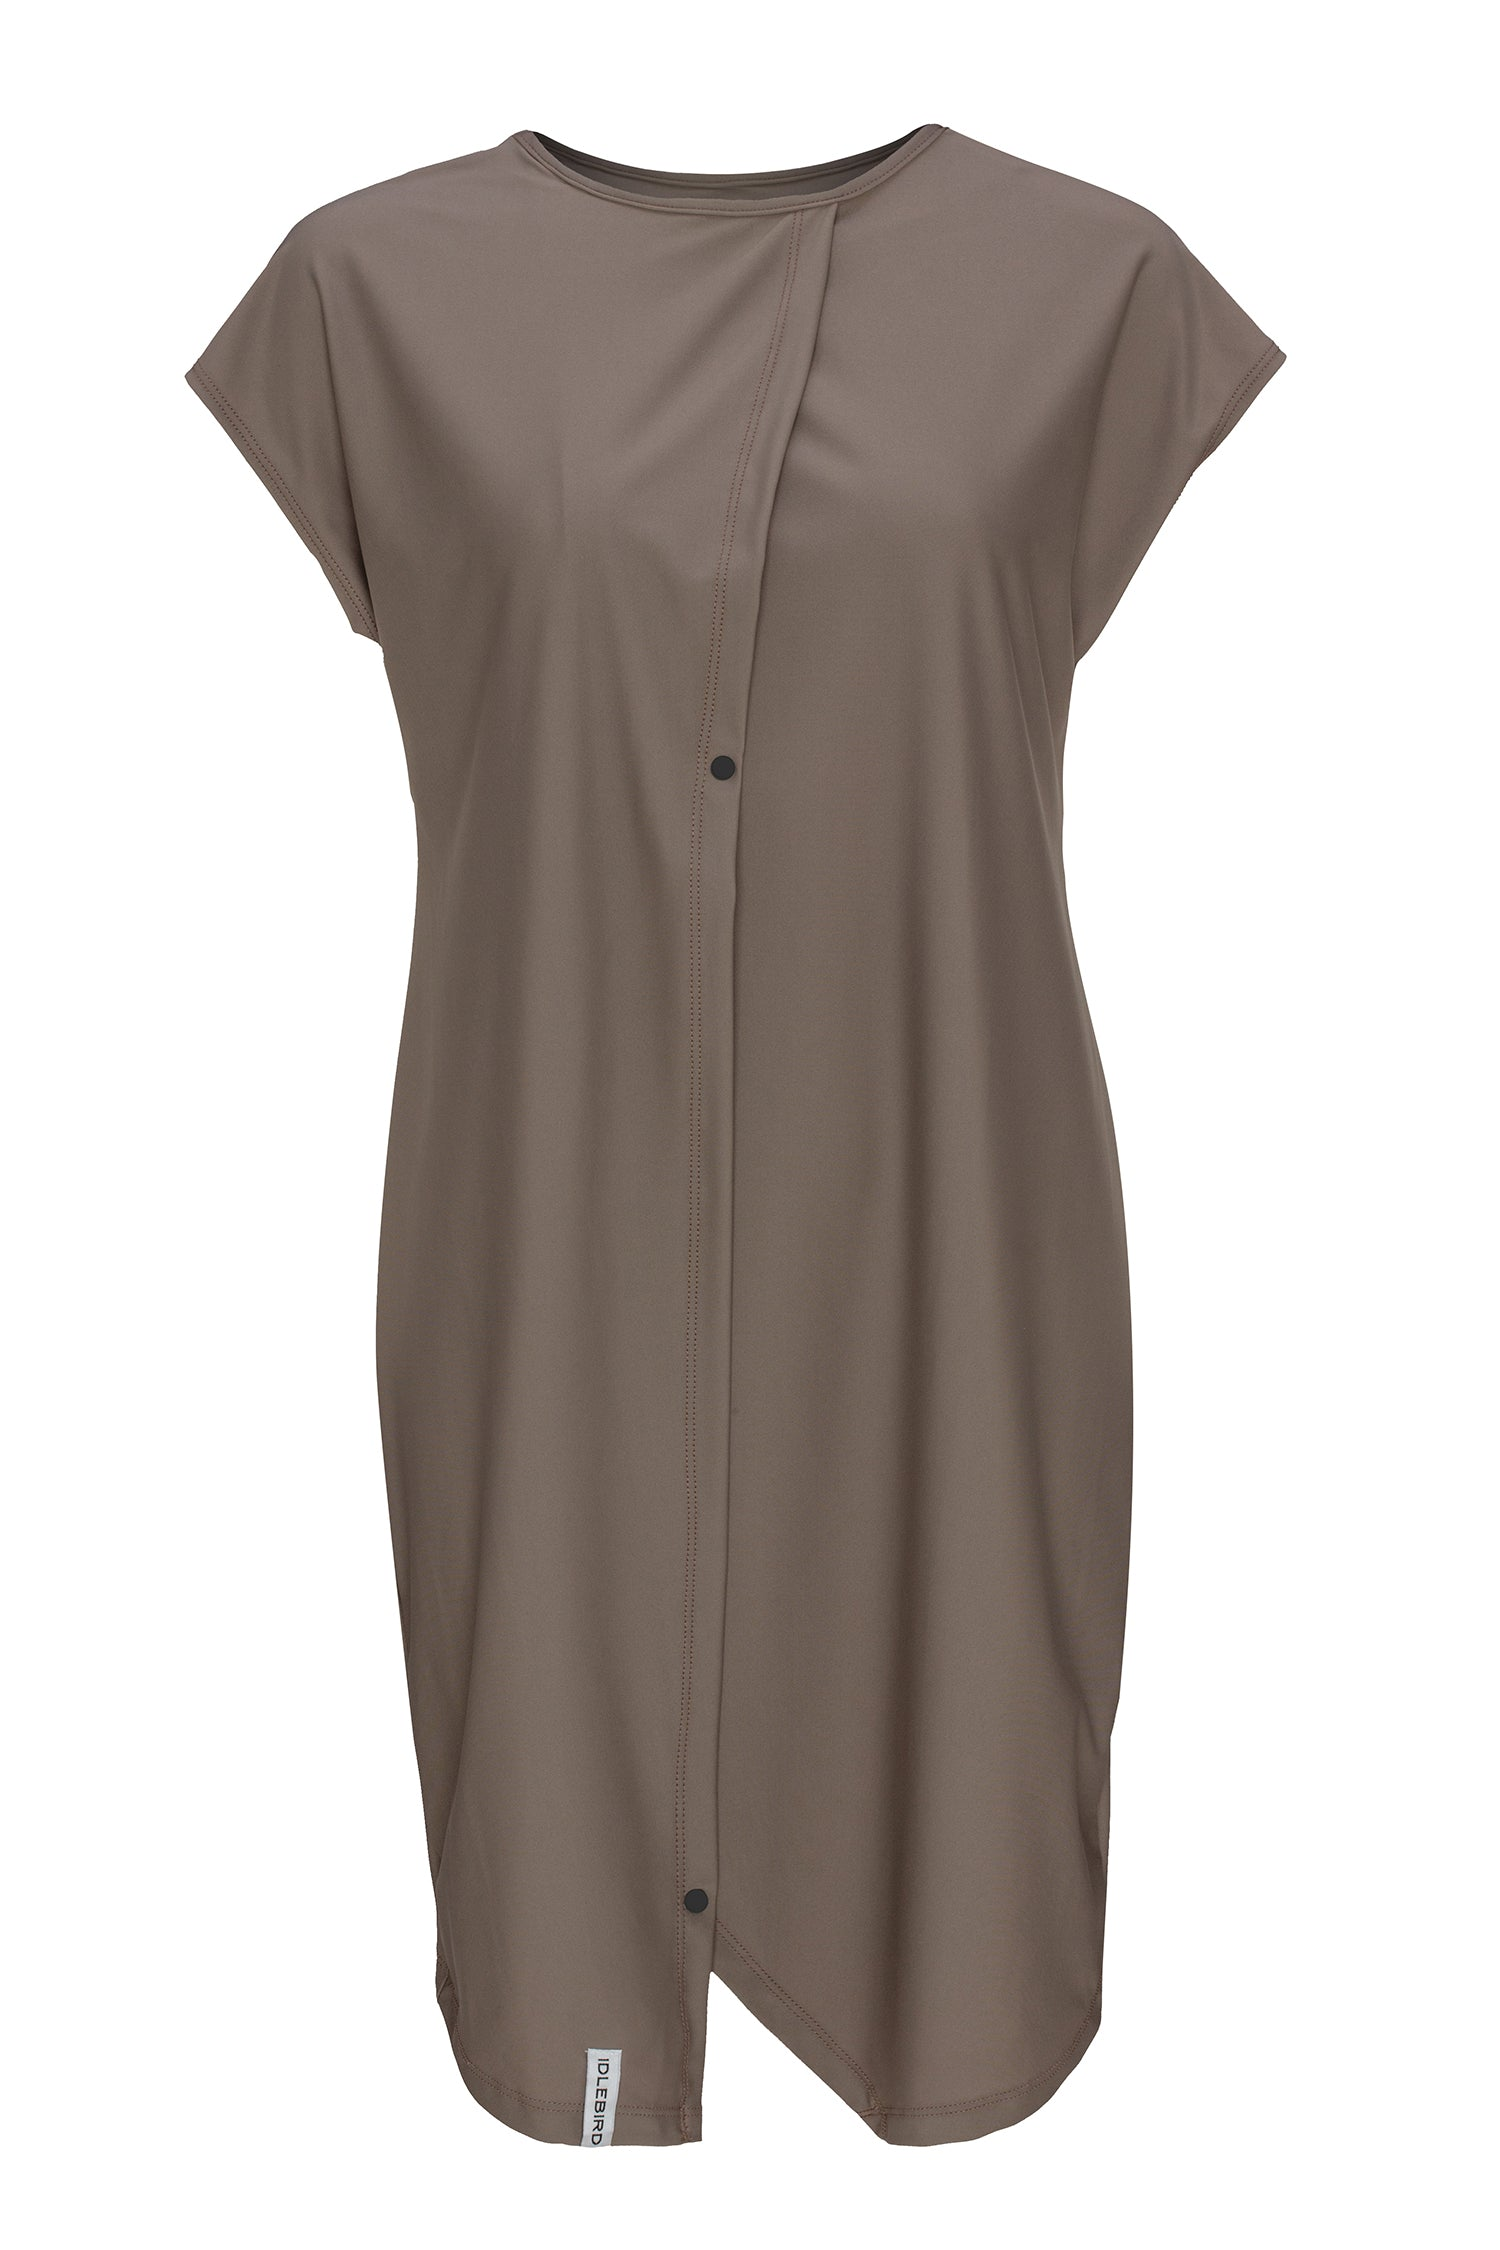 Spin Around Tunic - Mushroom UPF50+, Sun protective clothing, Idlebird